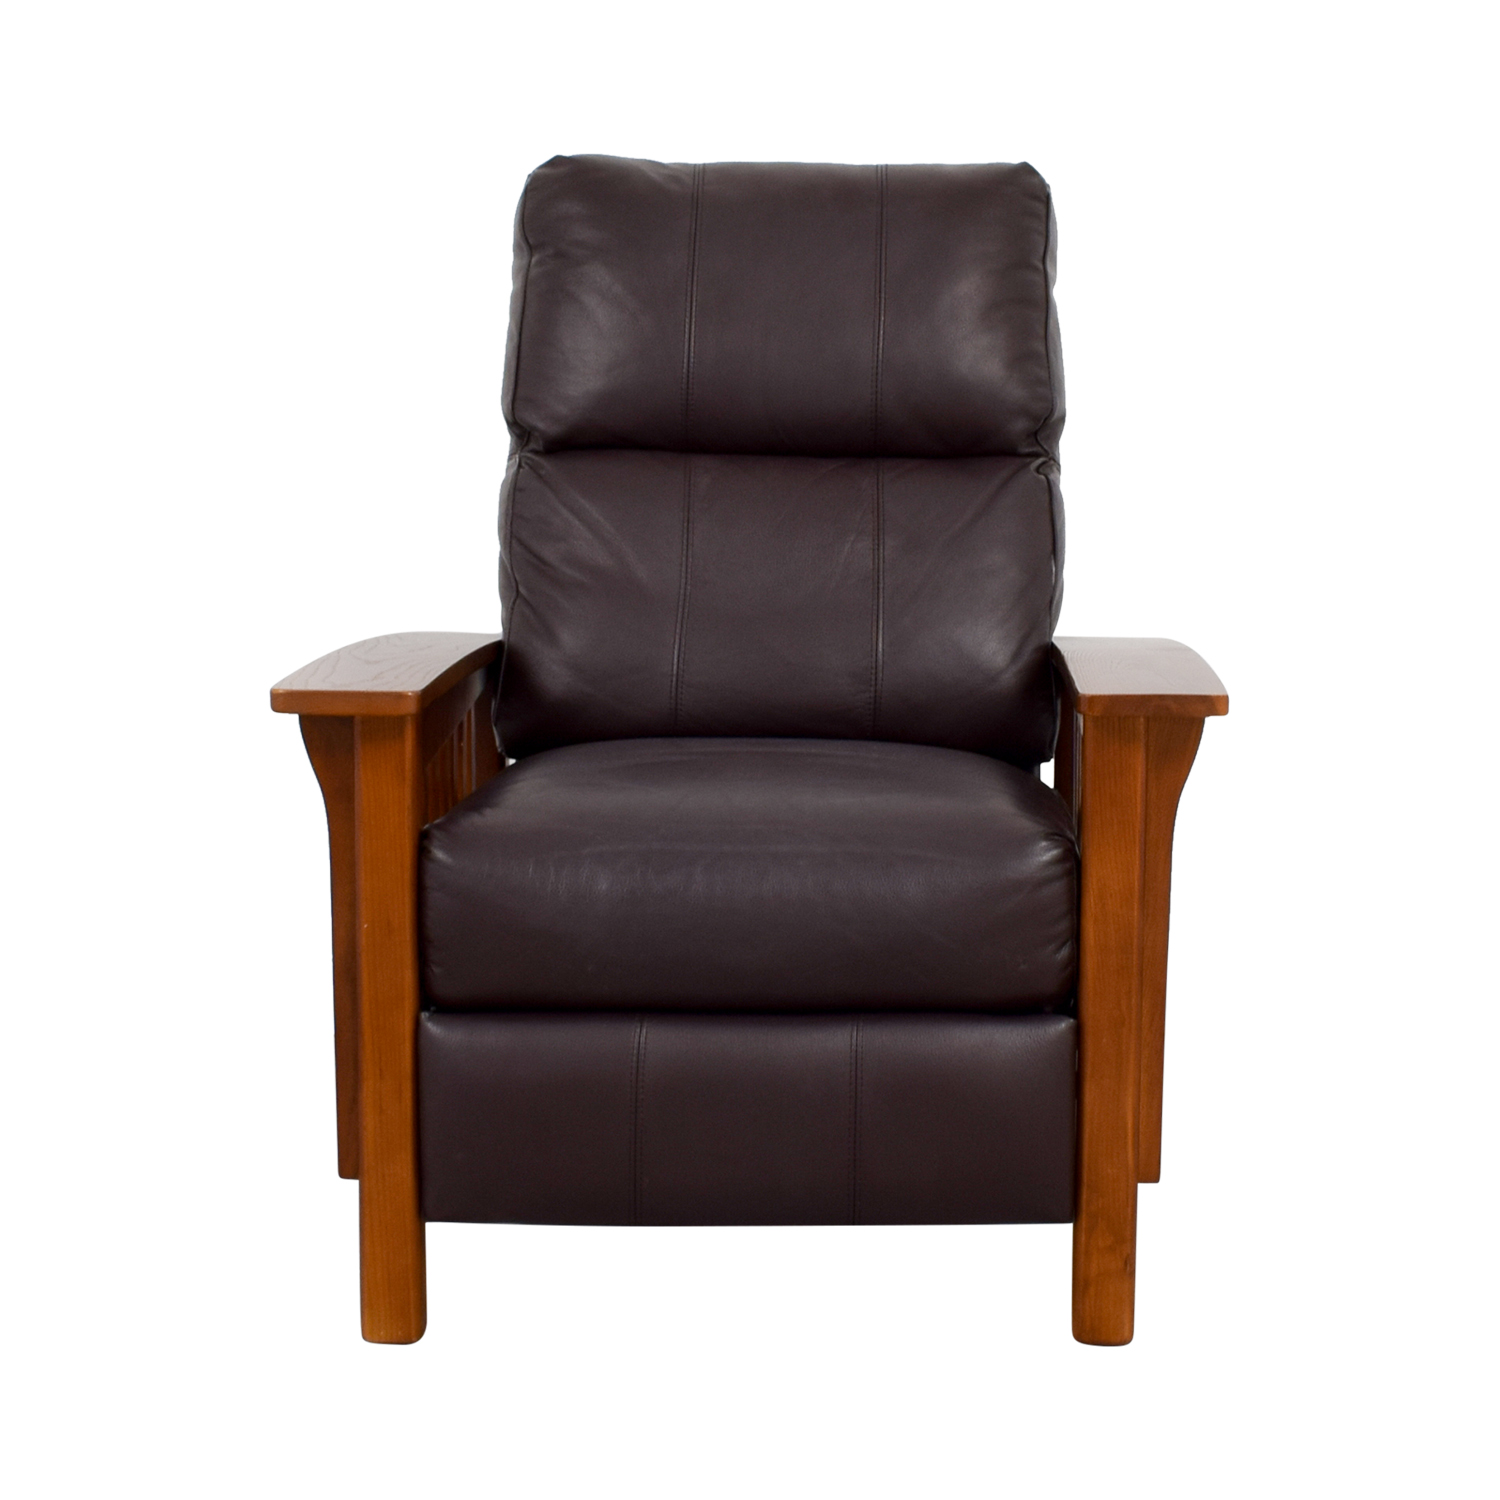 Macys Leather Chair Macy 39s Leather Furniture